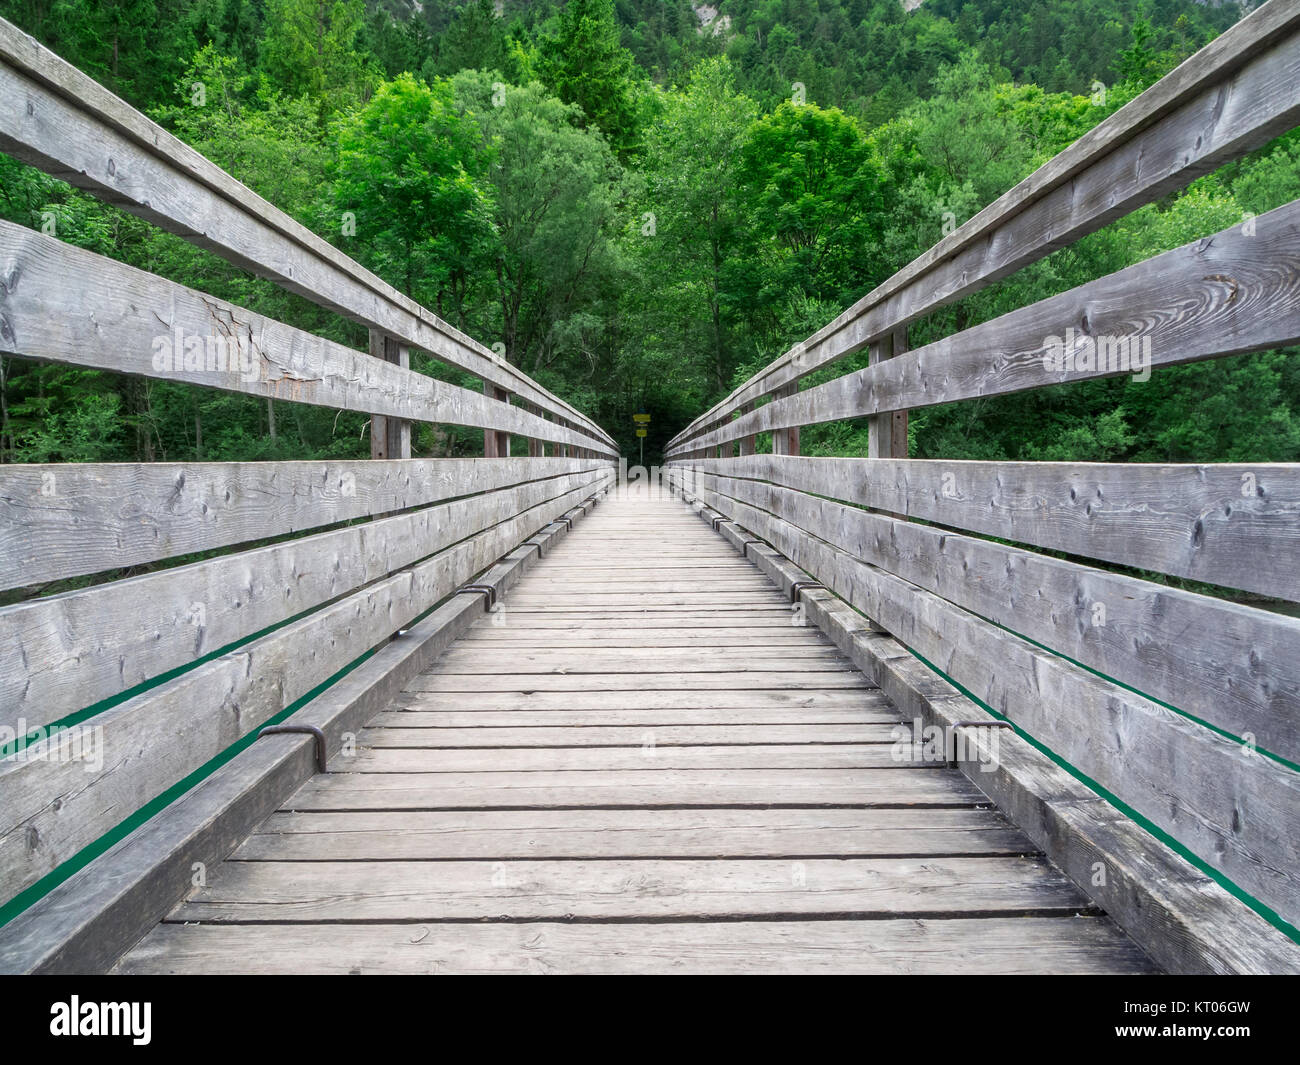 Central perspective view on the bridge over the Plansee in Austria. - Stock Image